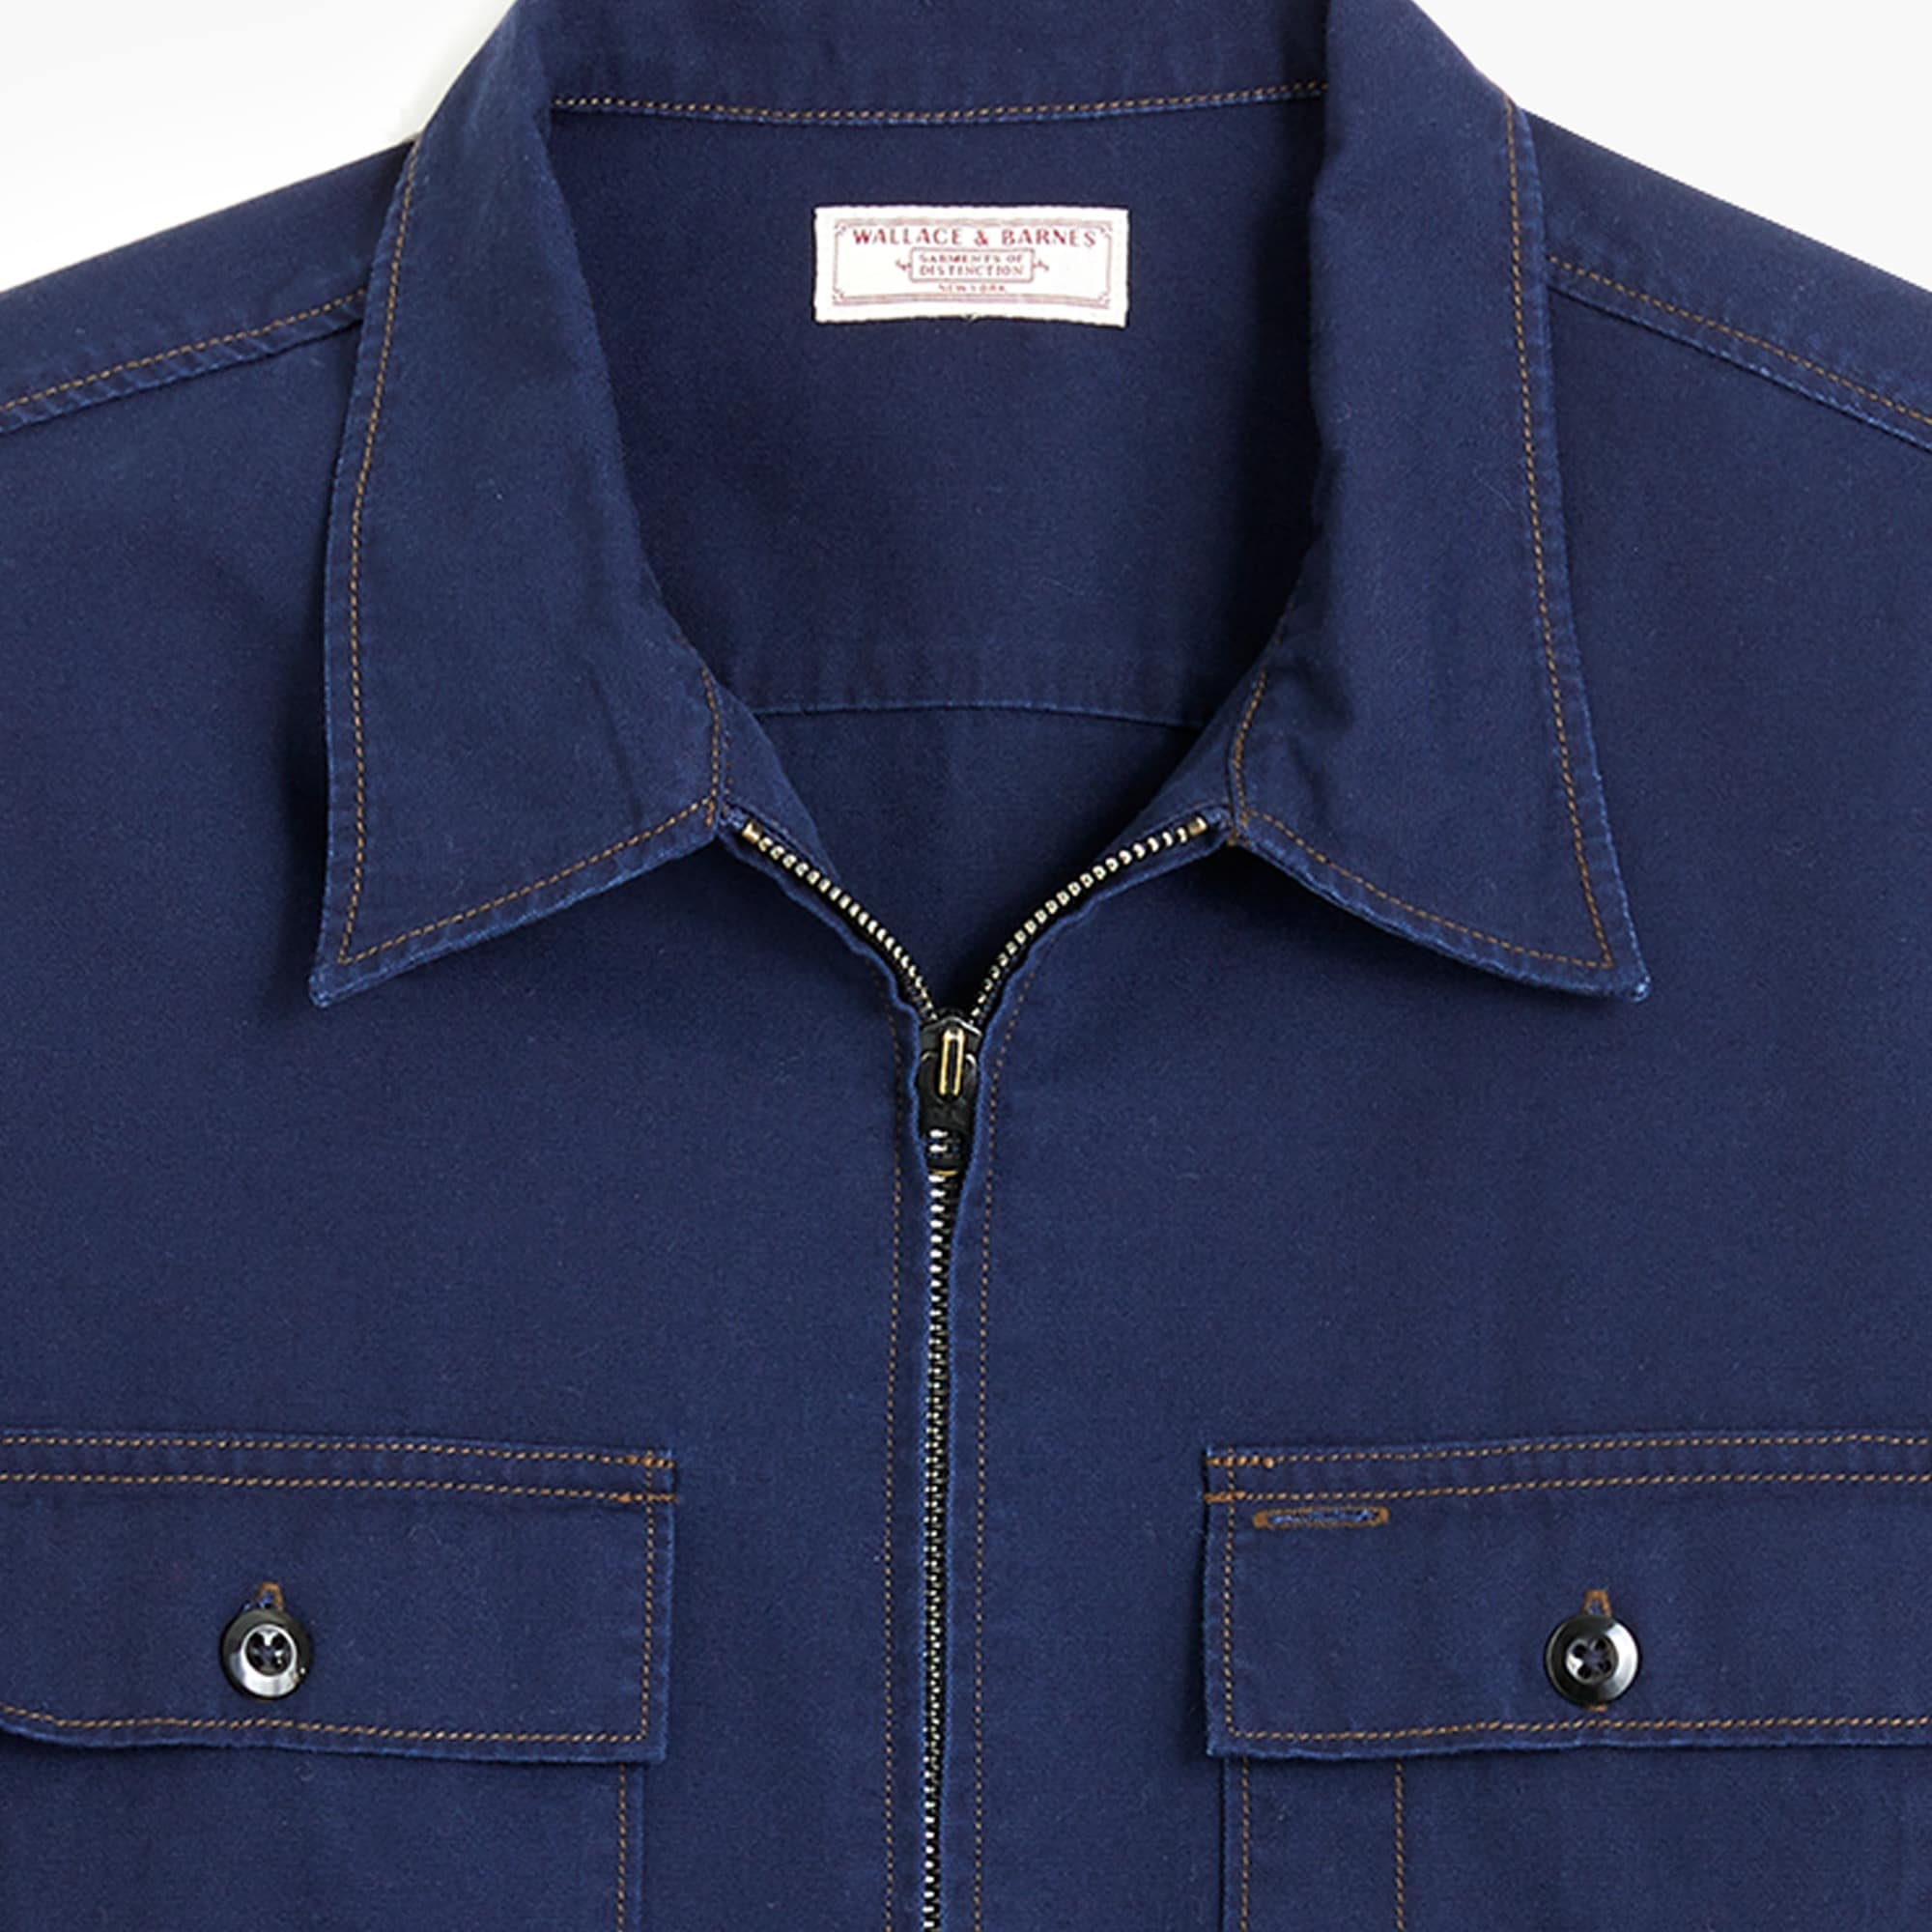 Wallace & Barnes canvas zip-front workshirt